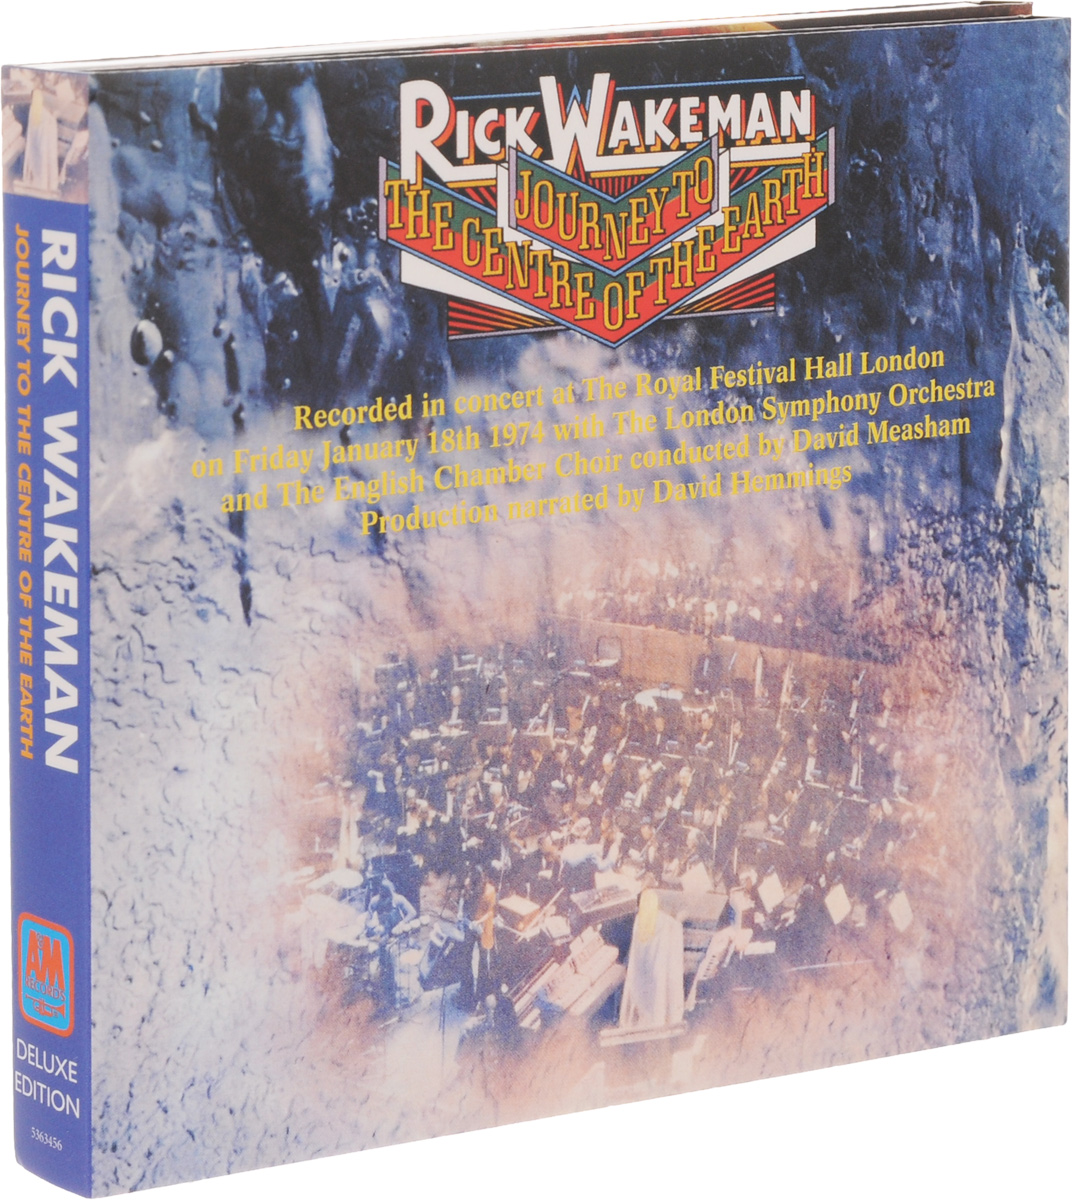 Рик Уэйкман Rick Wakeman. Journey To The Centre Of The Eart. Deluxe Edition (CD + DVD) джеймс блант james blunt all the lost souls deluxe edition cd dvd